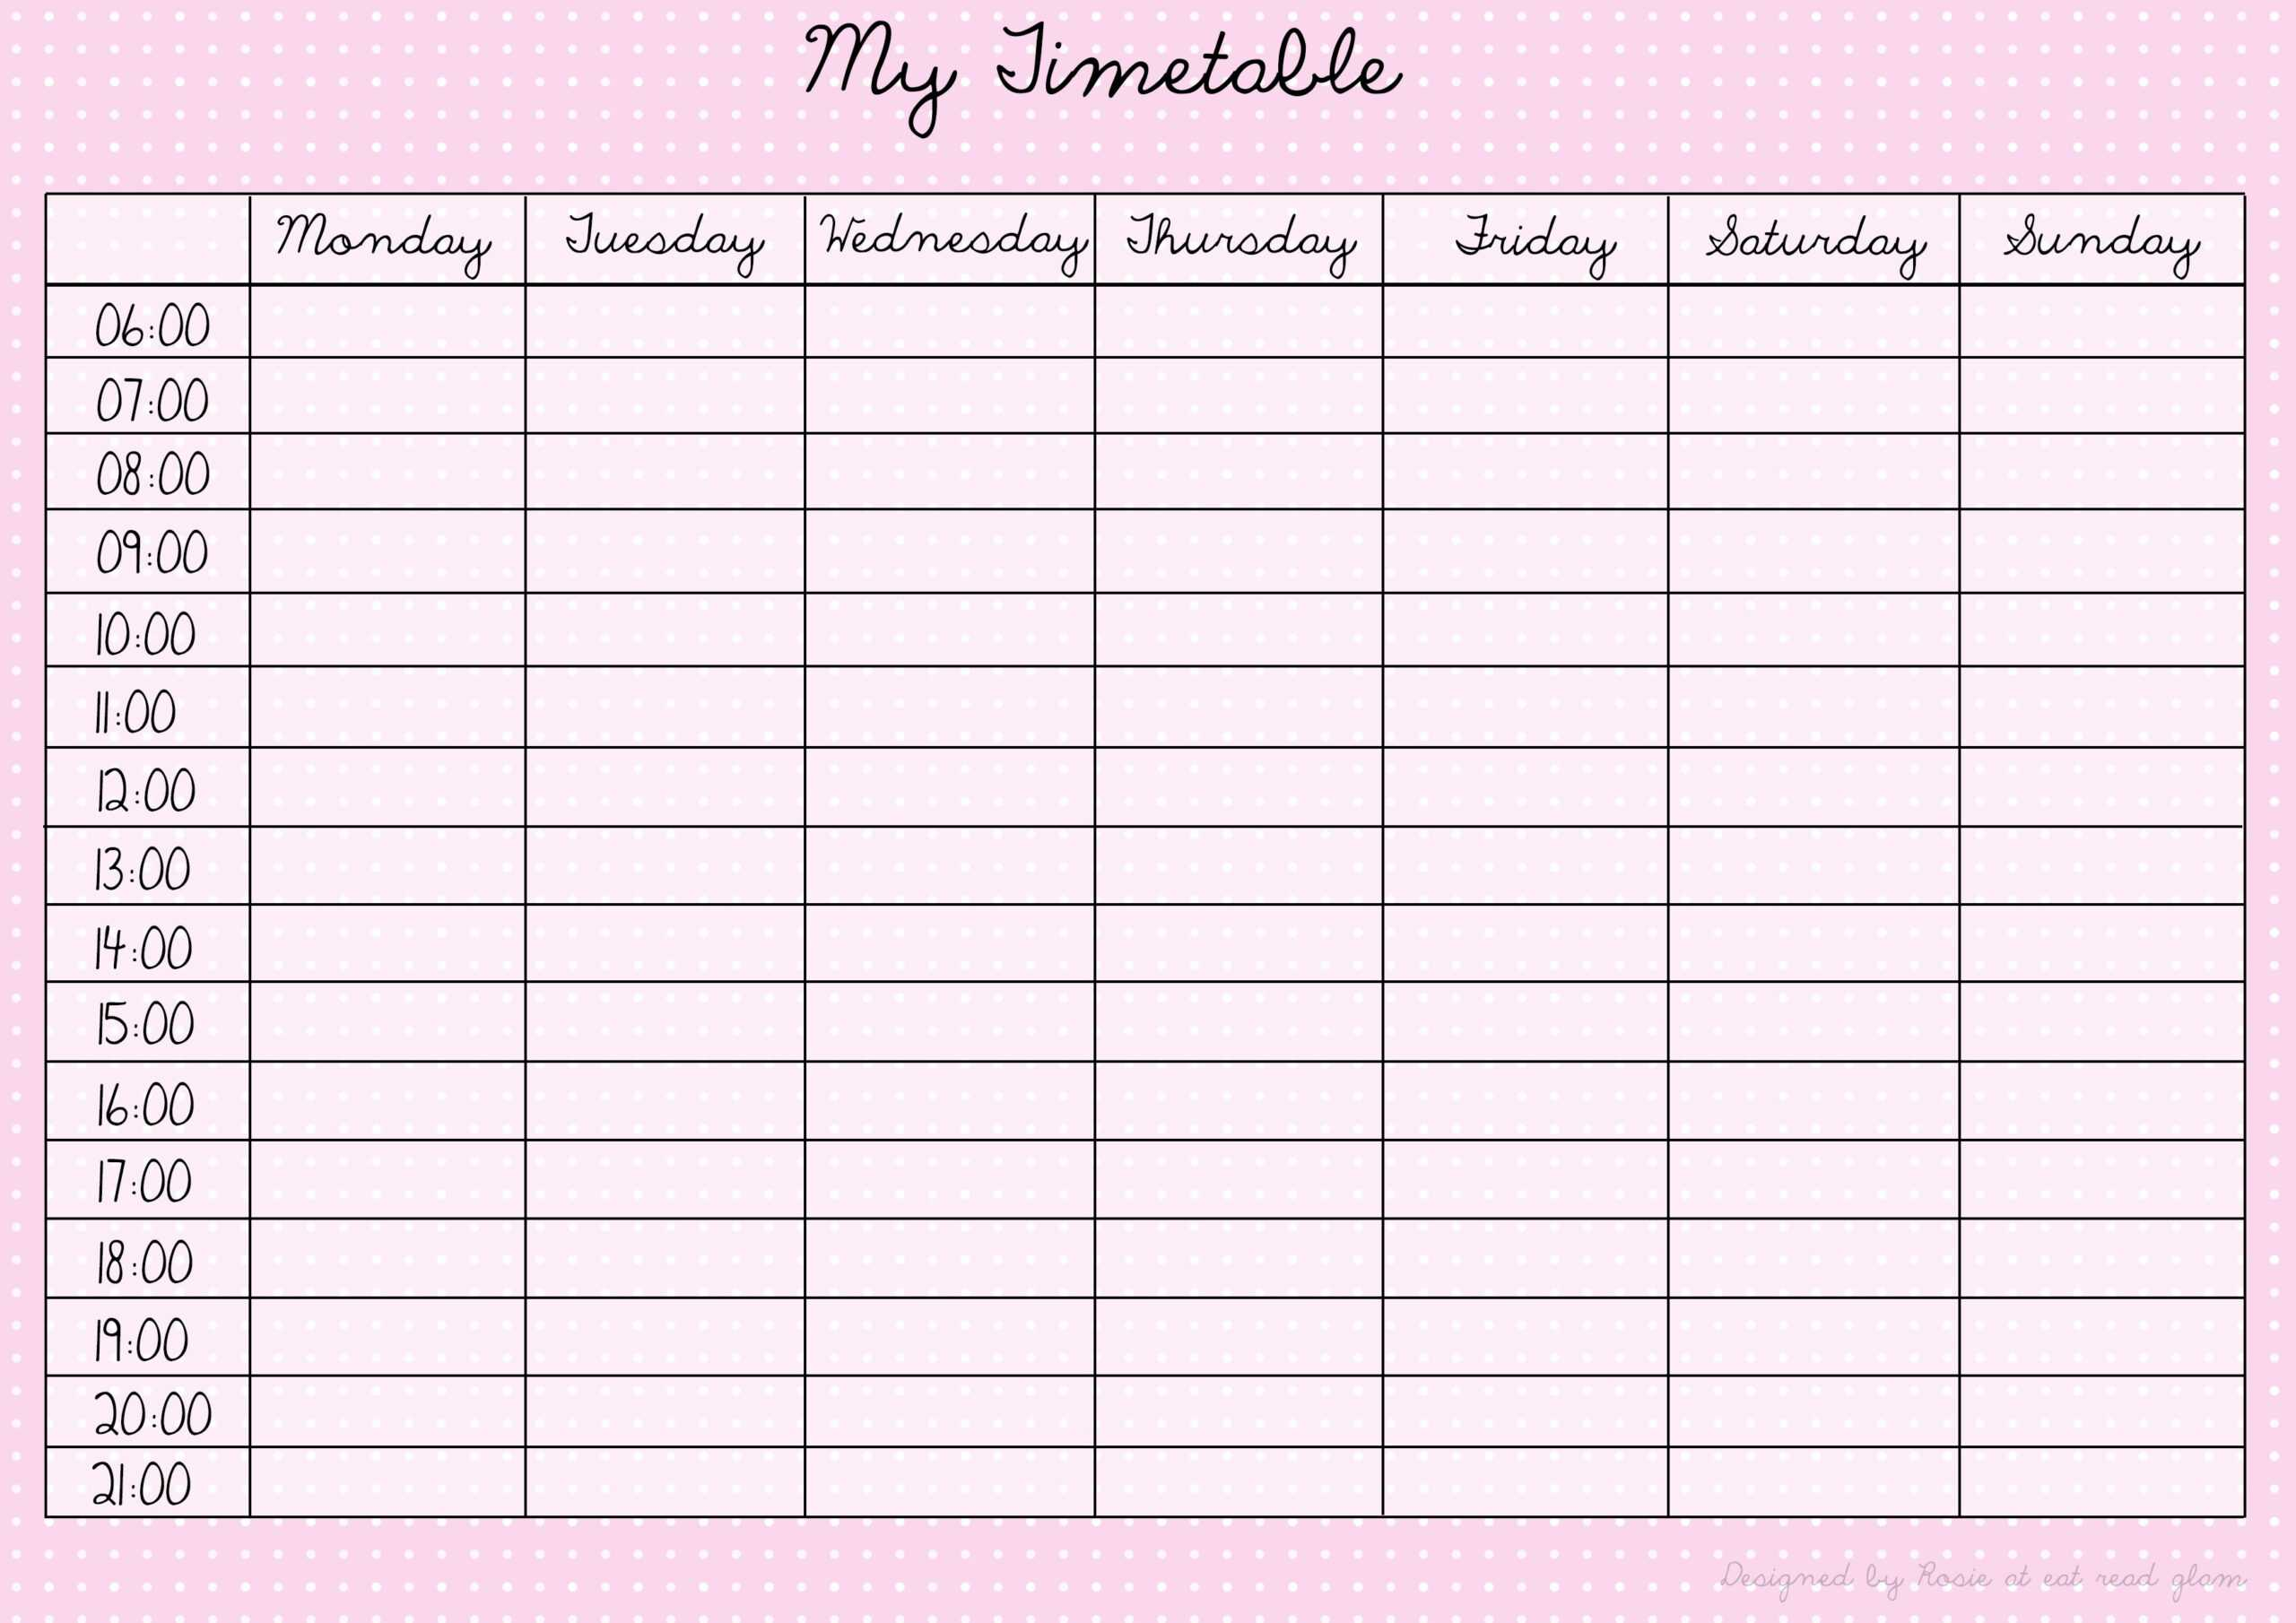 Revision Timetable Template Blank with Blank Revision Timetable Template